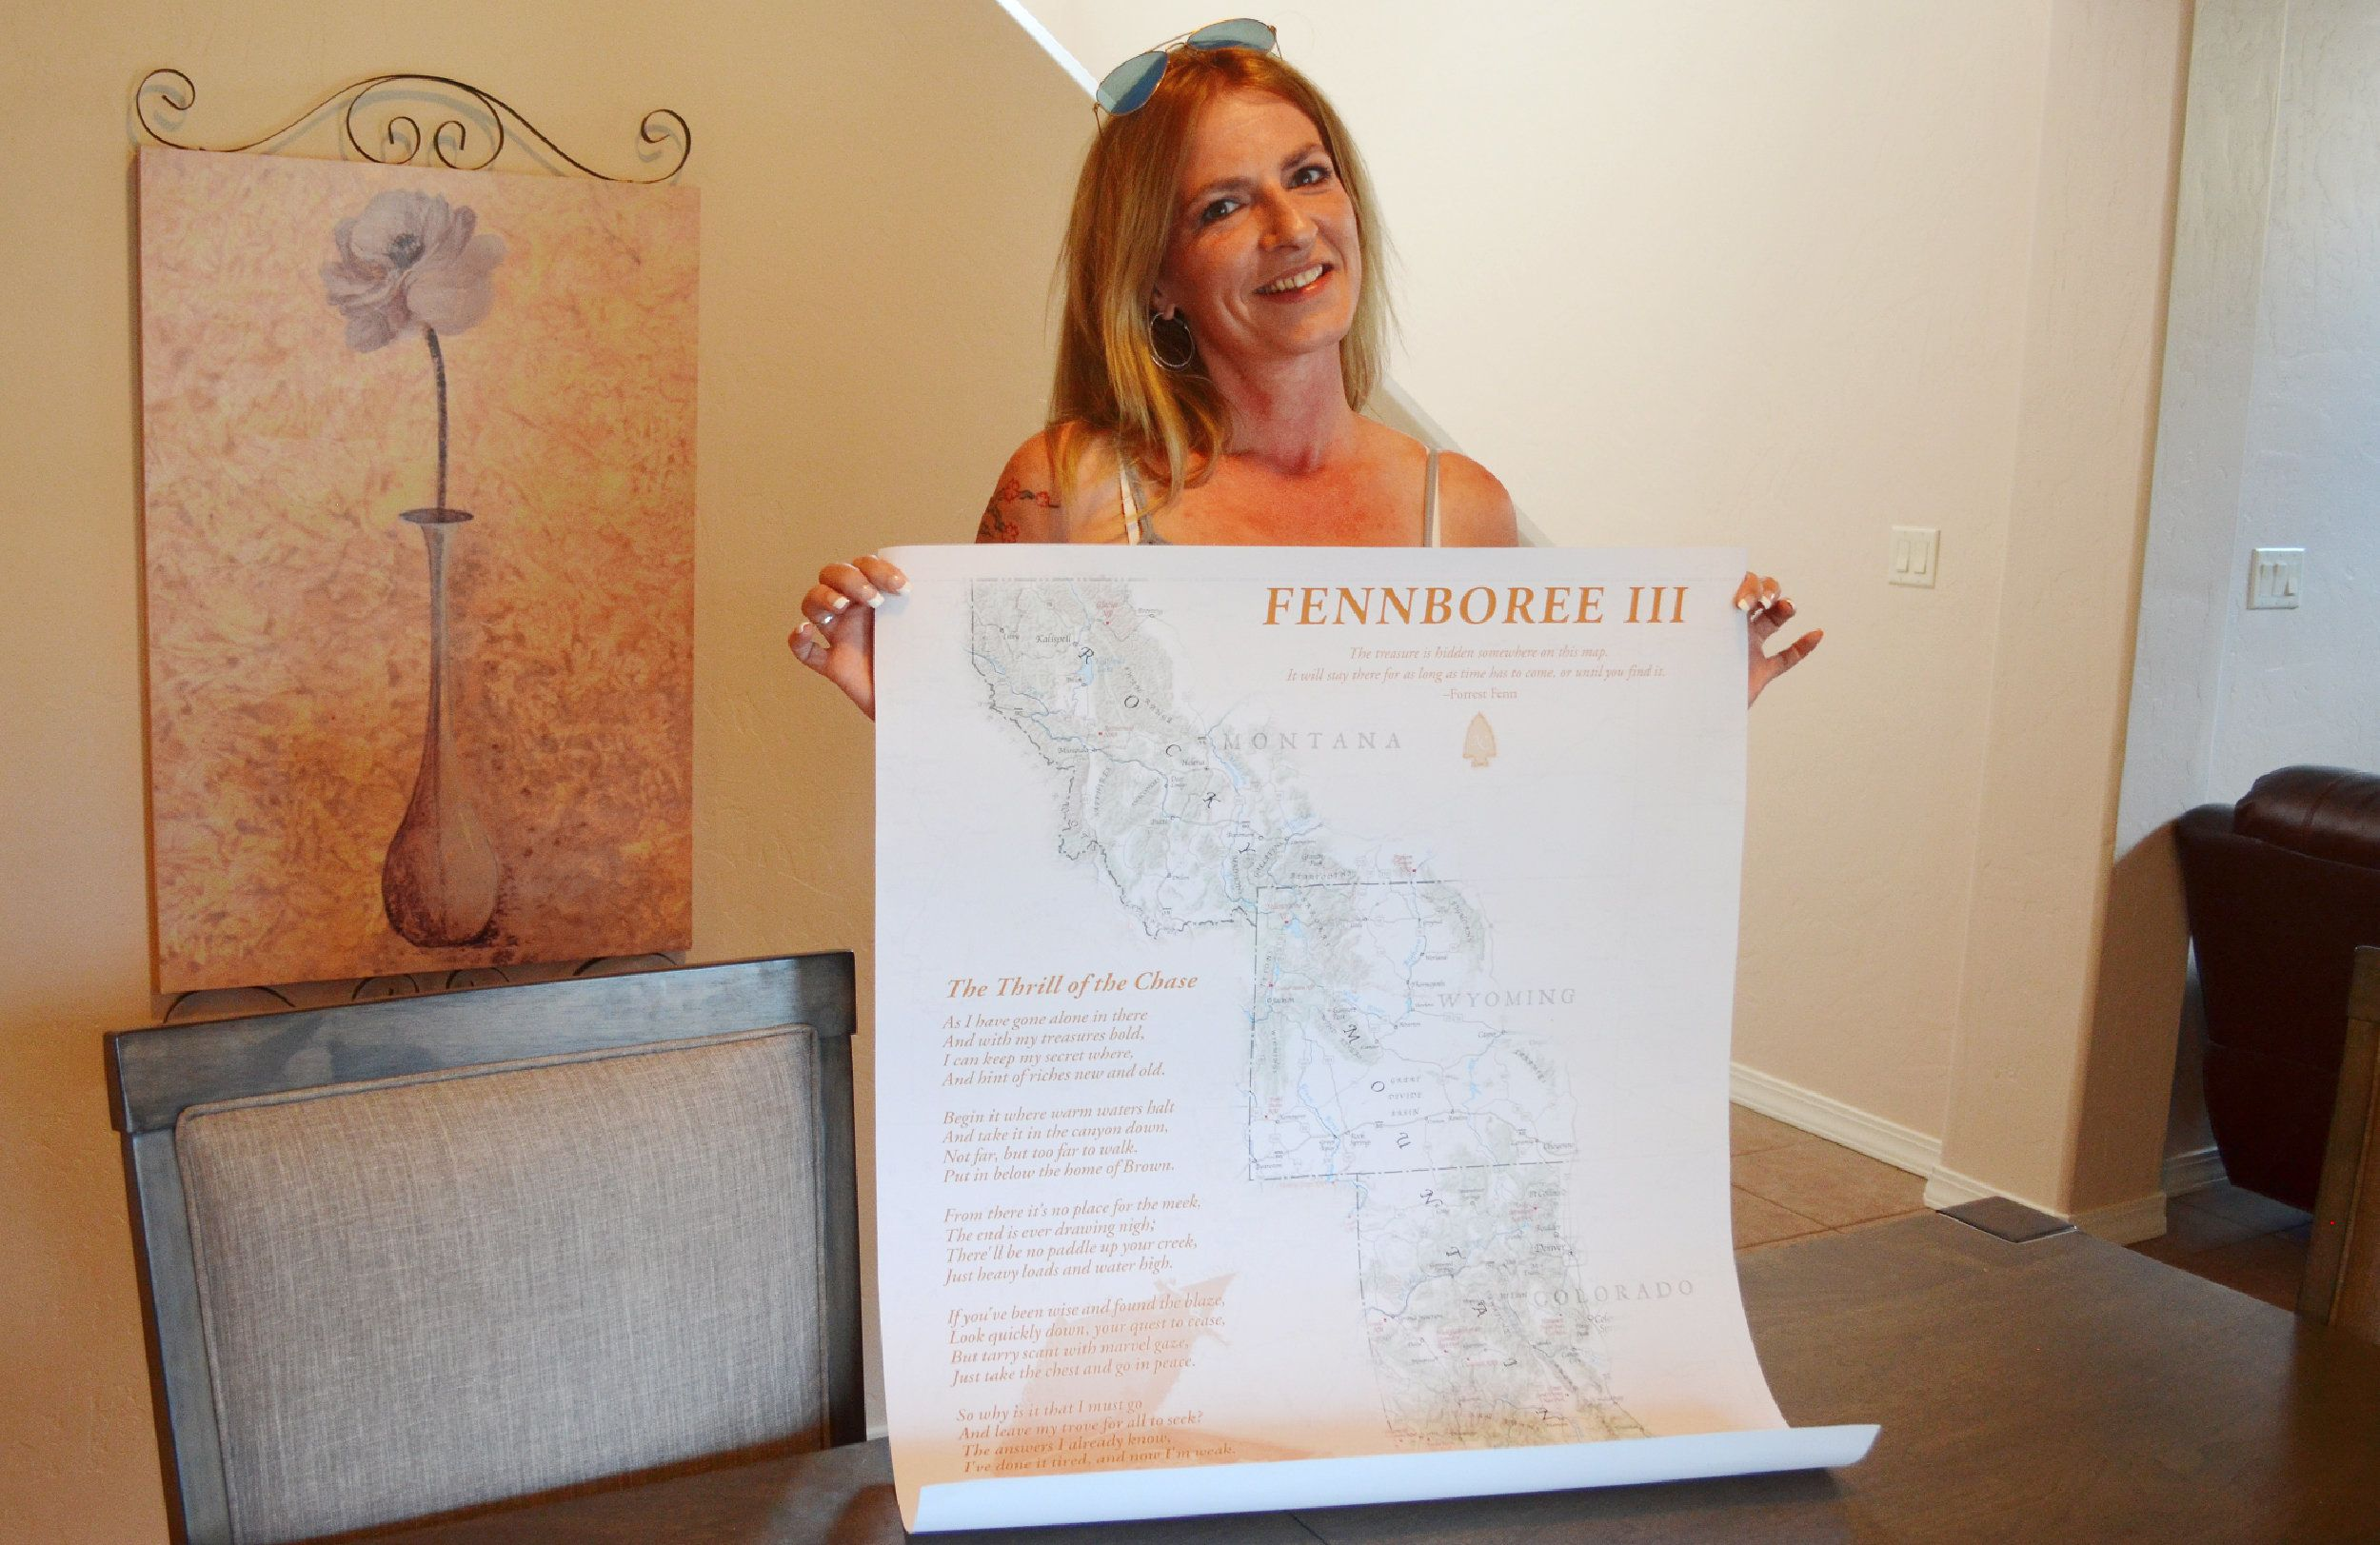 Sacha Johnston of Albuquerque holds up a poster from Fennboree, an annual gathering of Forrest Fenn treasure hunter